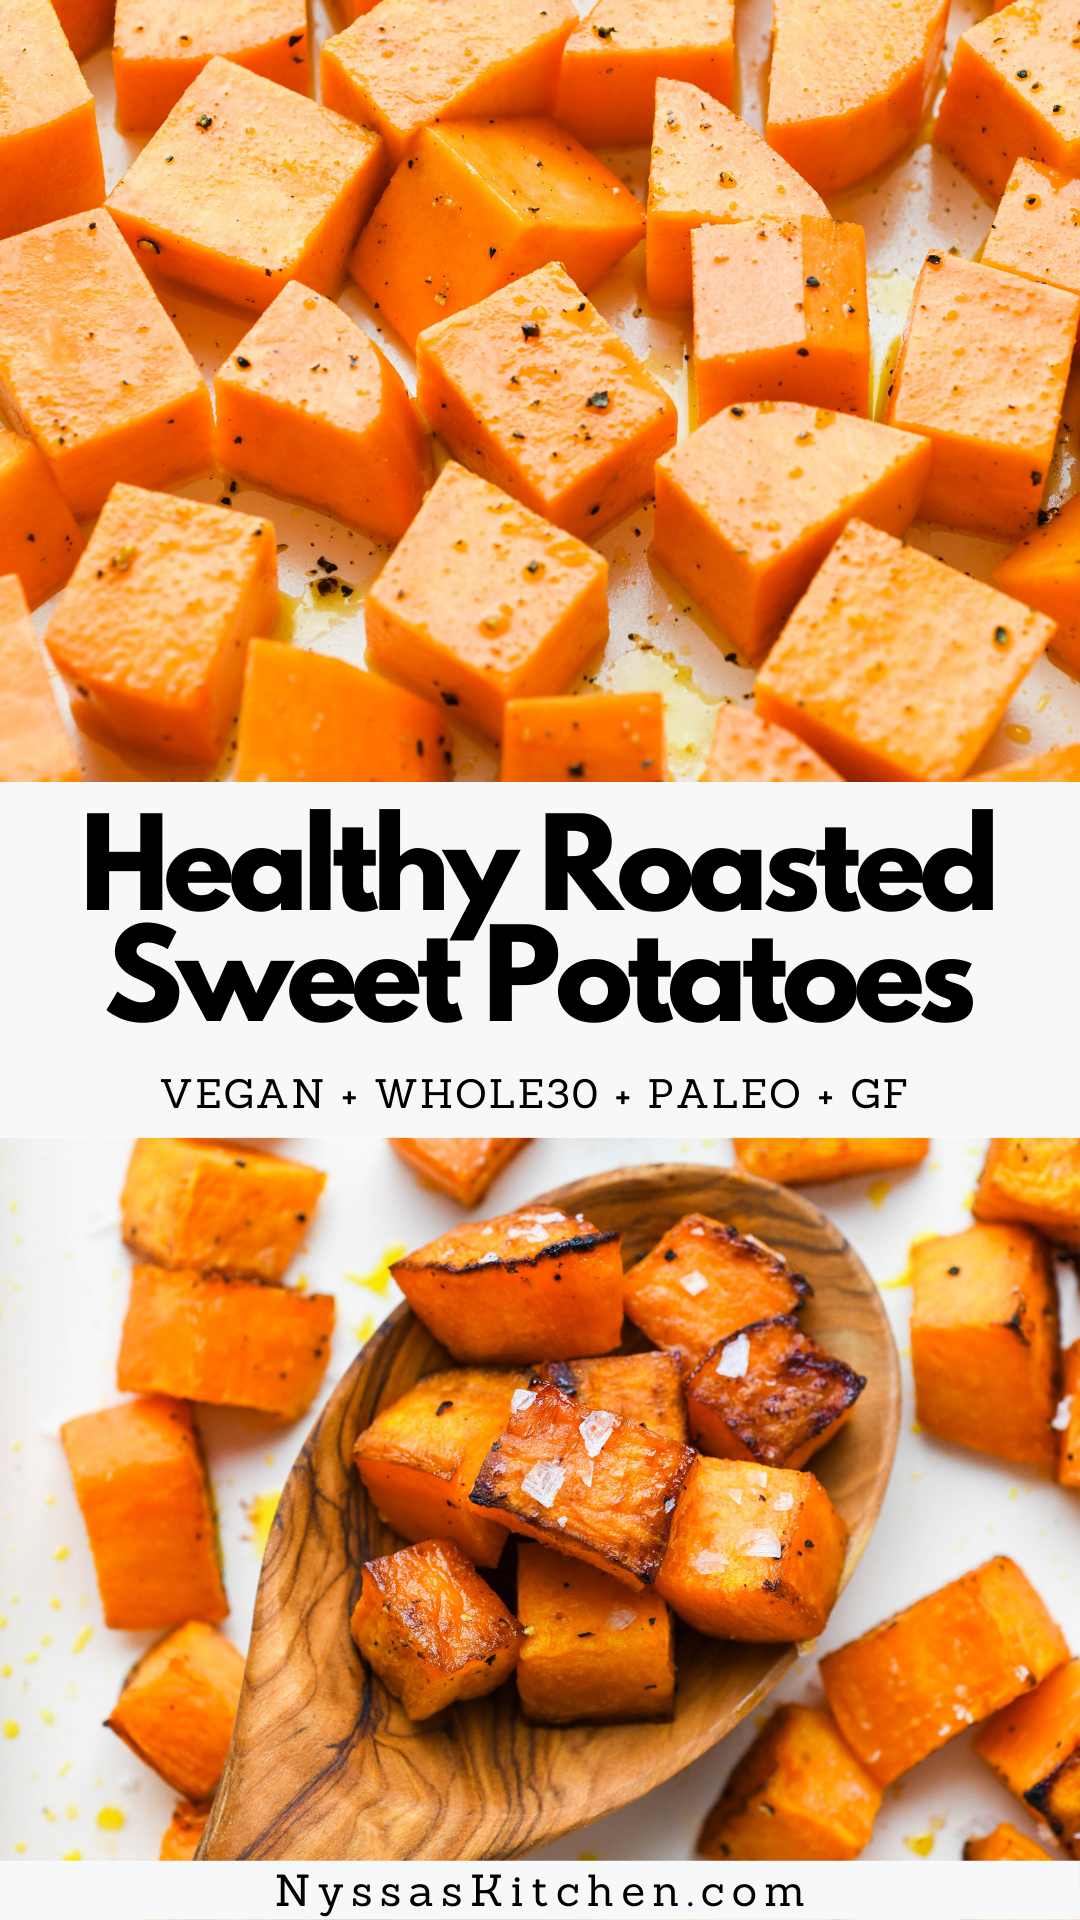 These healthy roasted sweet potatoes make an easy side dish or tasty addition to all kinds of dishes - from bowls, to breakfasts, to salads. They are crispy on the outside, soft on the inside, and perfectly seasoned. Great for meal prep or your holiday table! Whole30 compatible, paleo, gluten free, and vegan.